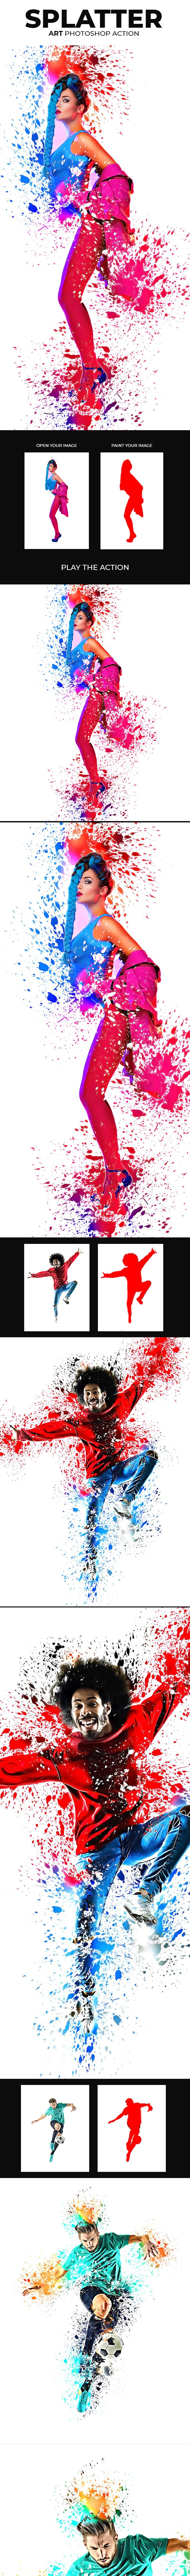 Splatter Art Photoshop Action - Photo Effects Actions